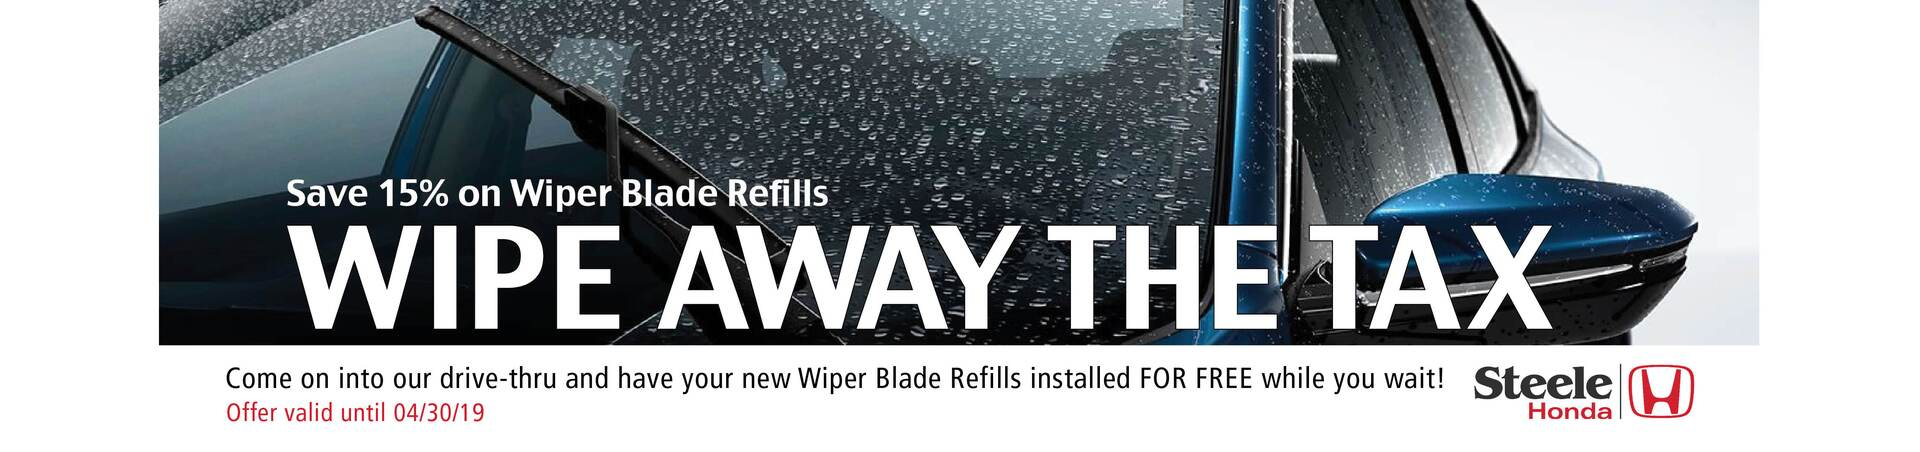 Save the tax on all wiper blade refills!